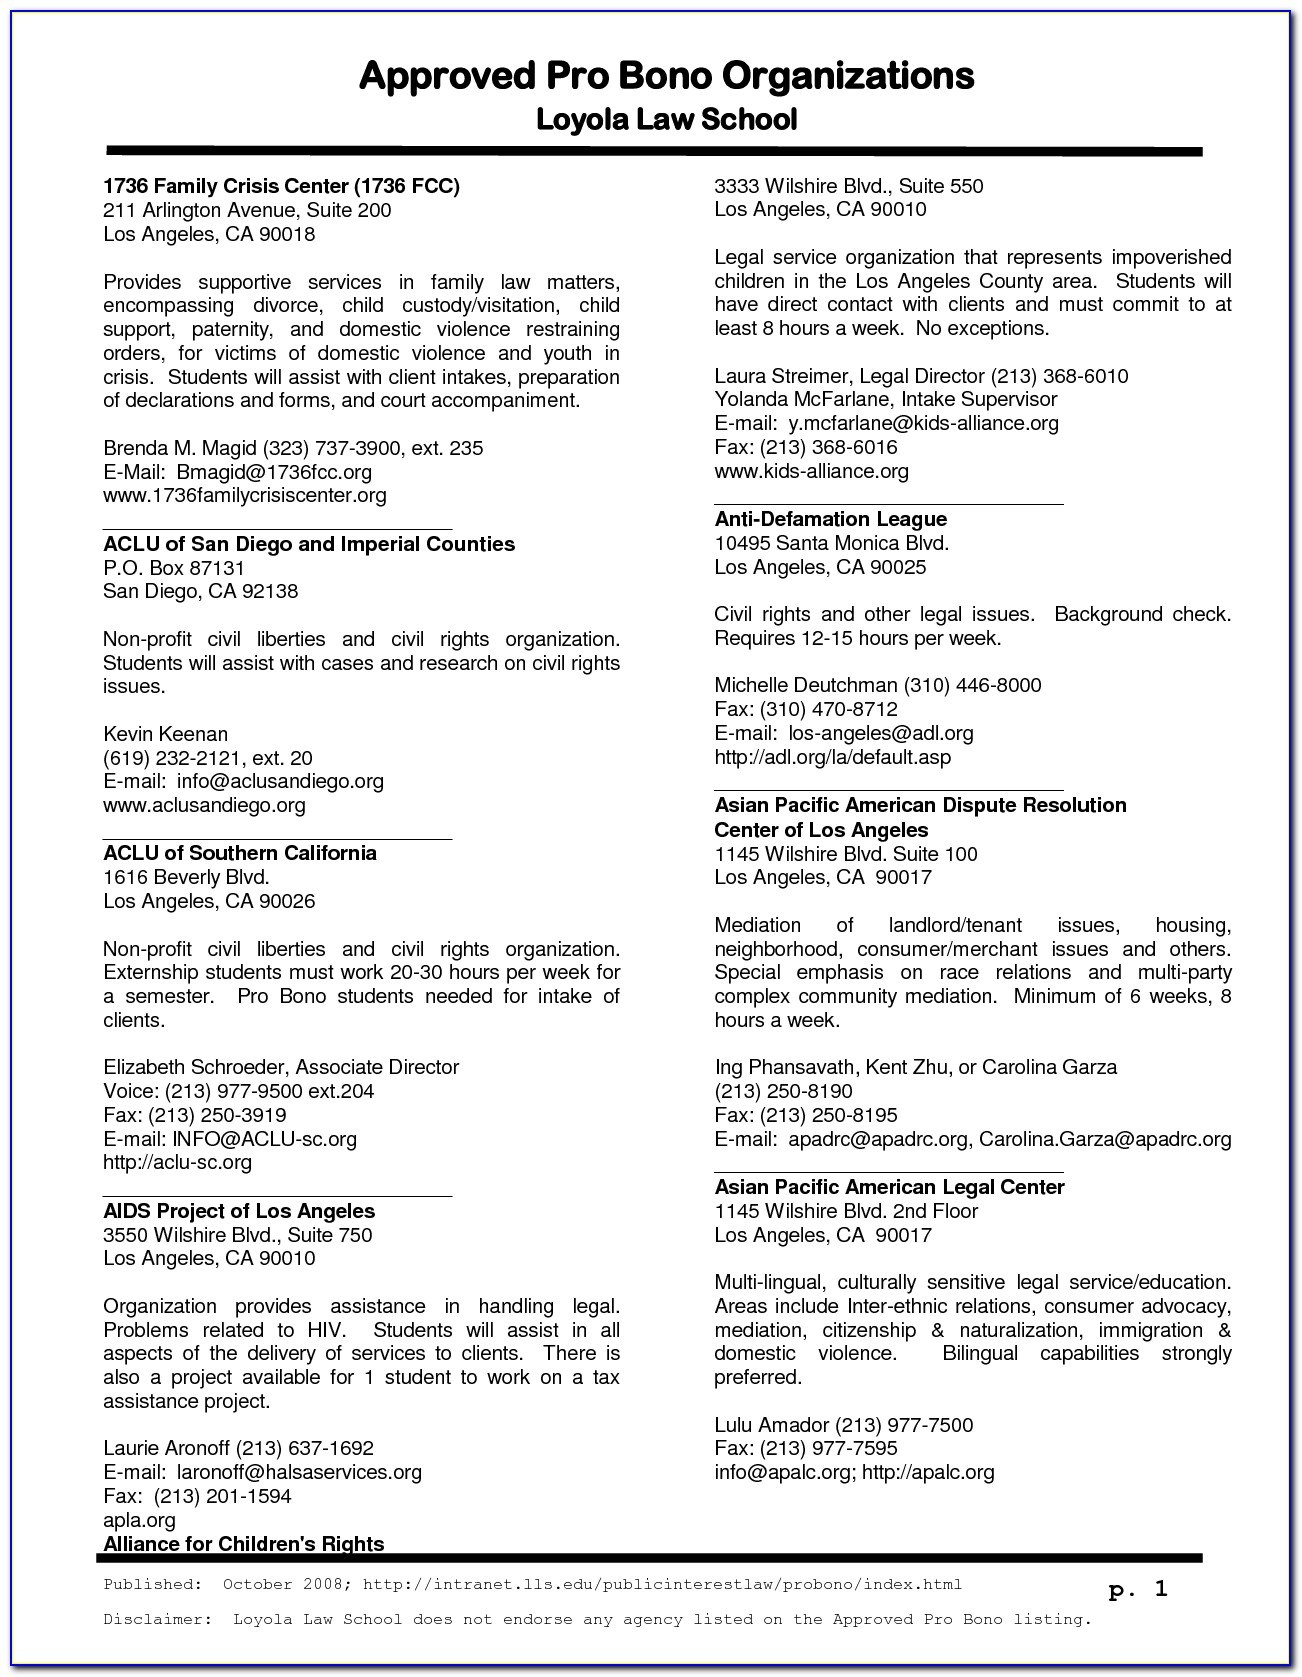 family law attorney resume samples vincegray2014 technologies tec data science objective Resume Family Law Attorney Resume